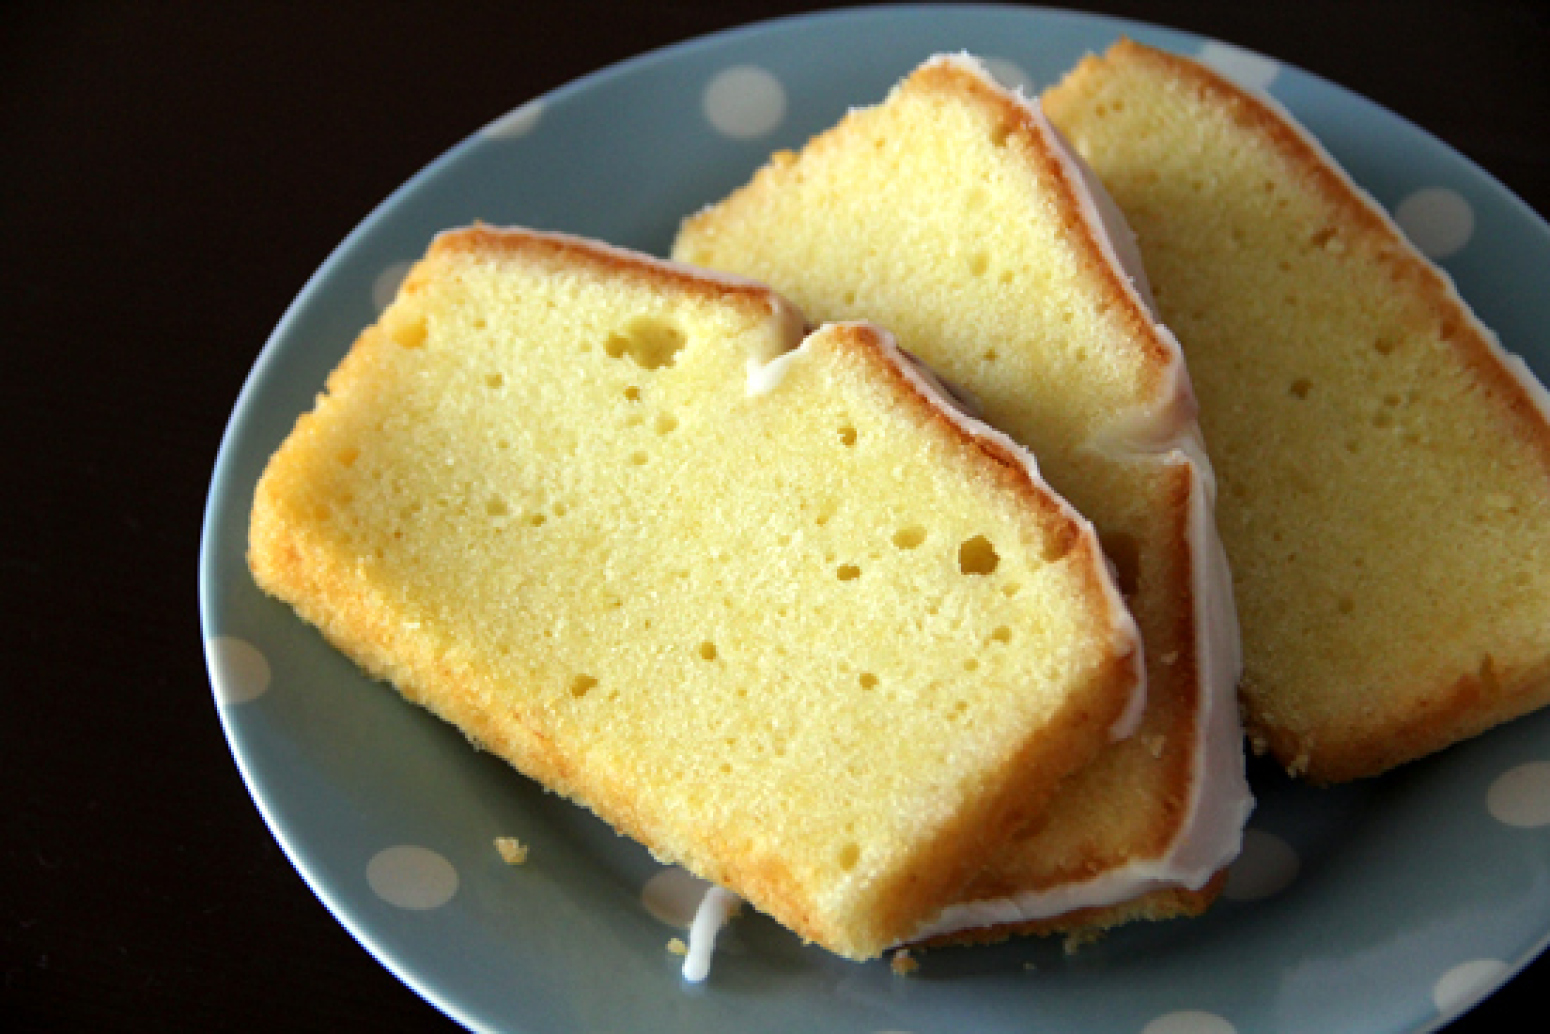 Meyer Lemon Pound Cake Recipe 2 | Just A Pinch Recipes